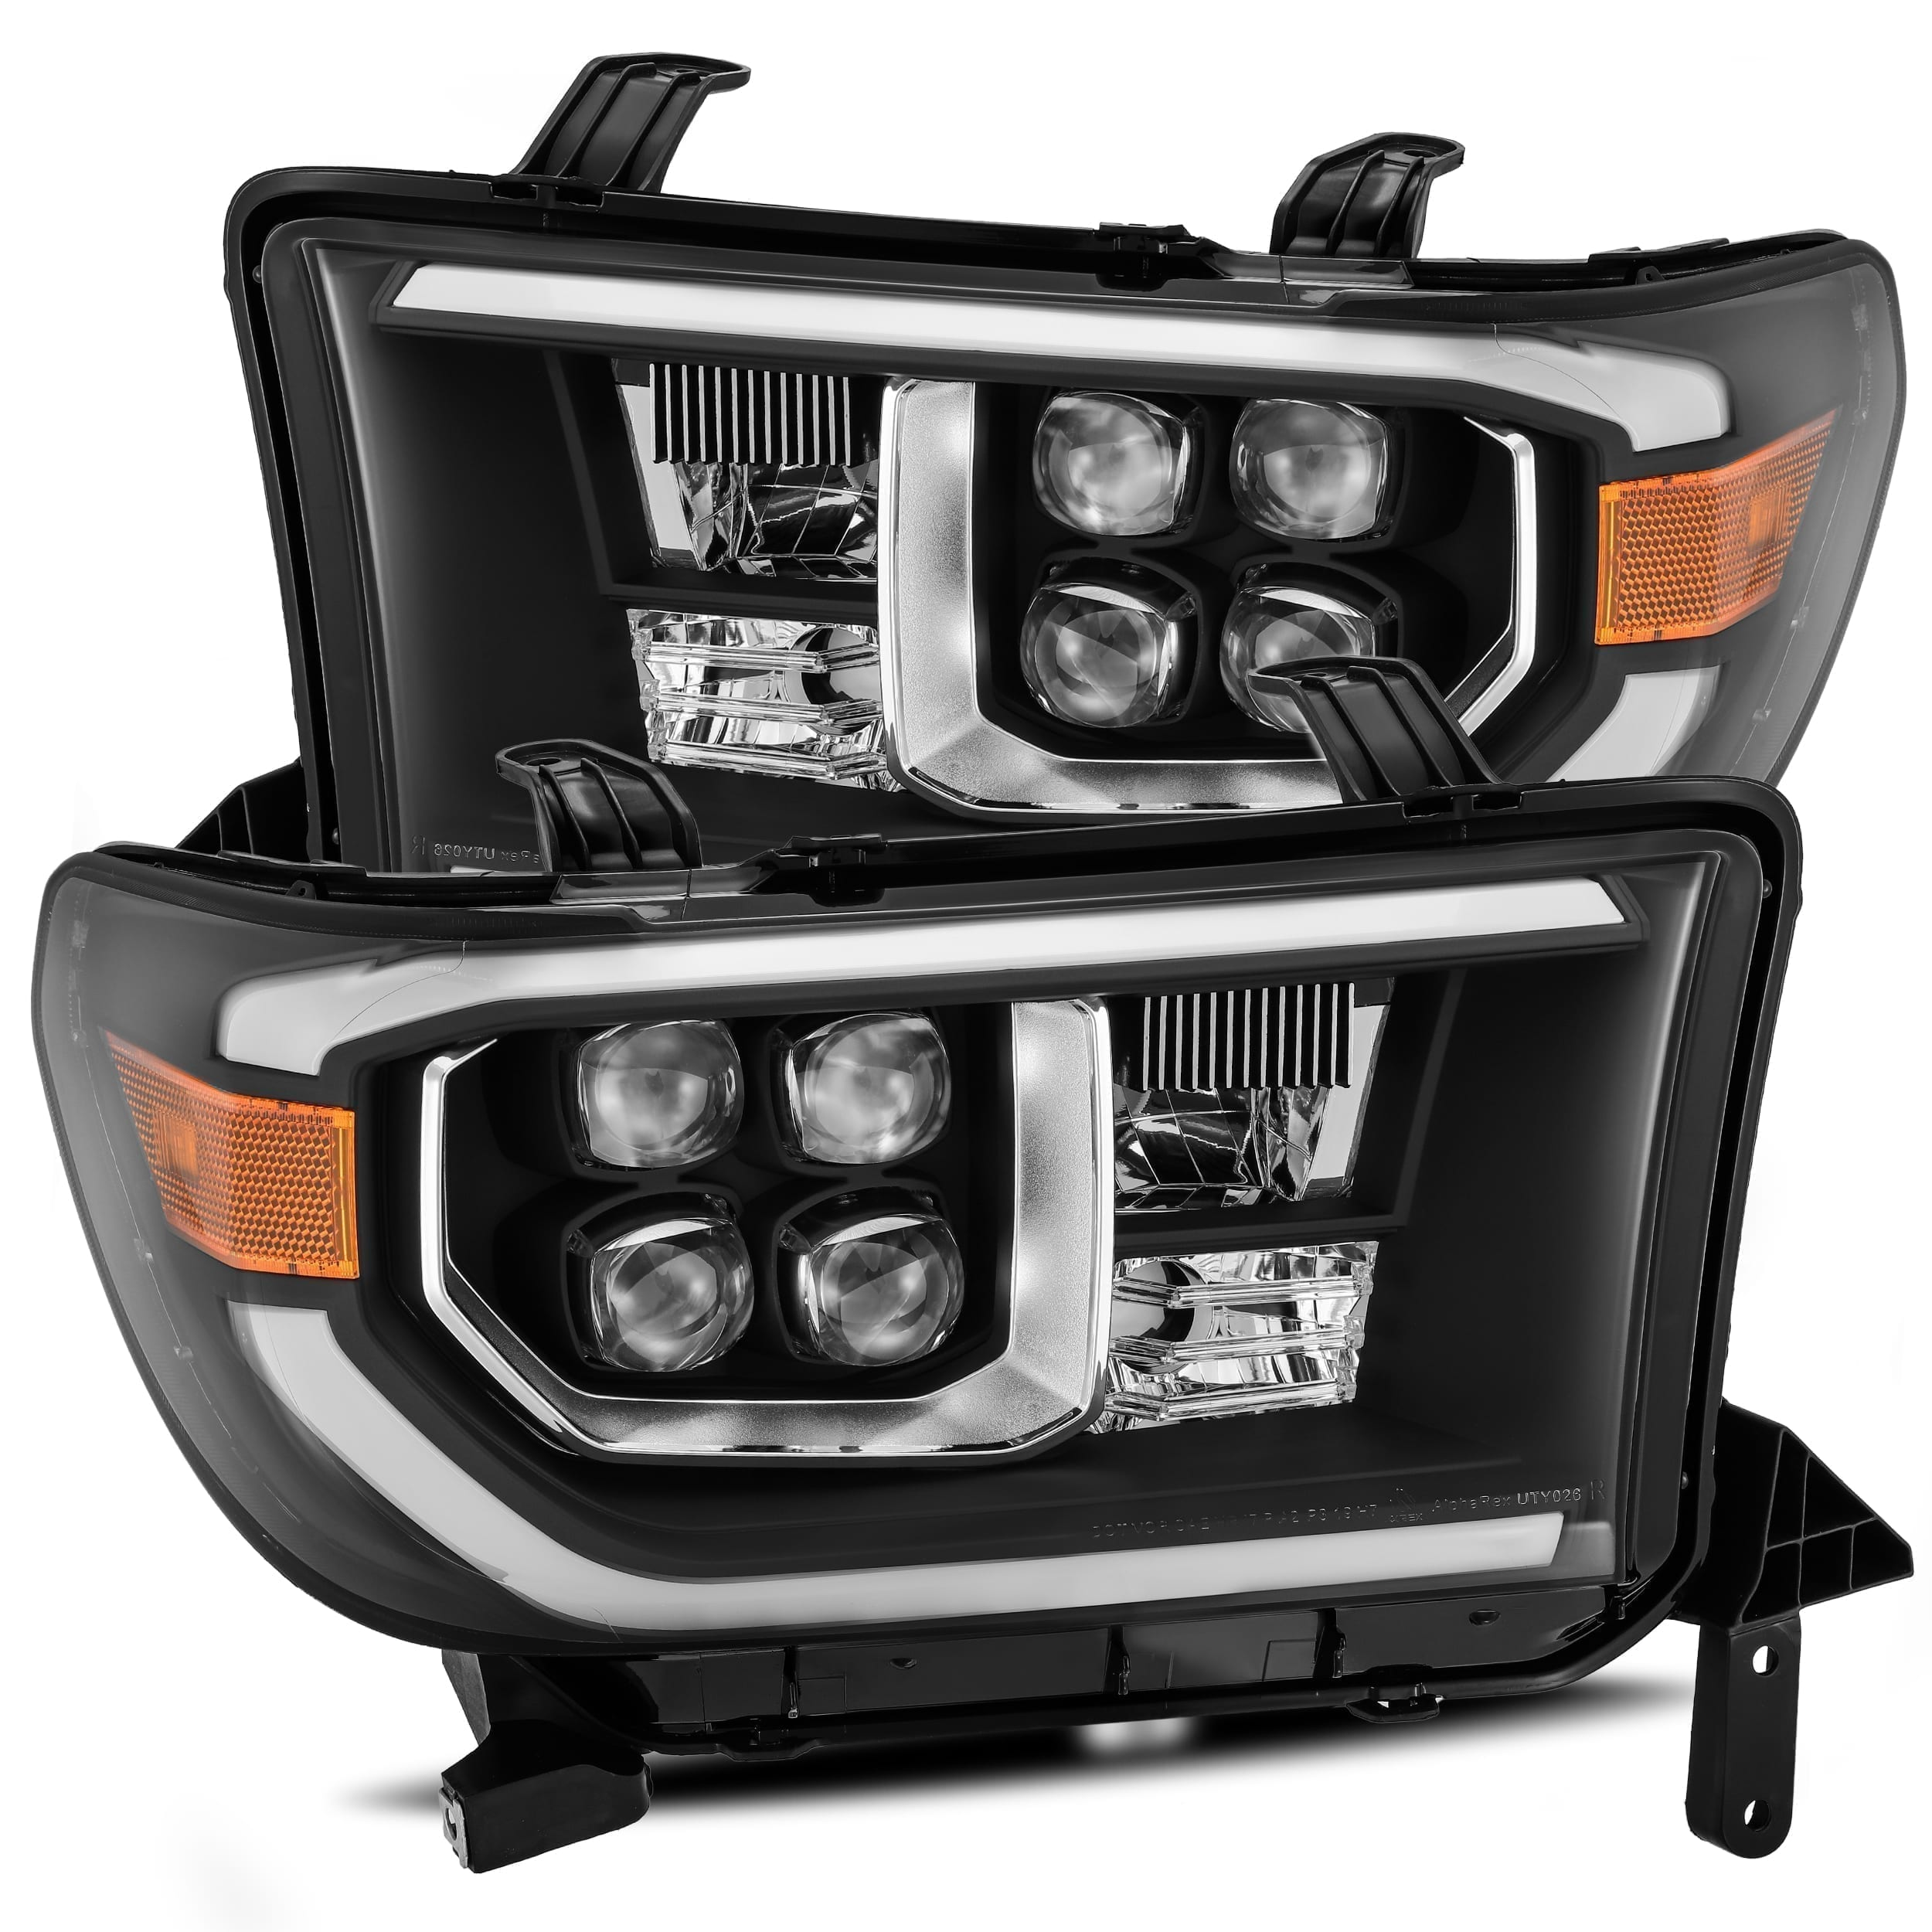 2007 2008 2009 2010 2011 2012 2013 Toyota Tundra Sequoia NOVA-Series Full LED Projector Headlights Black